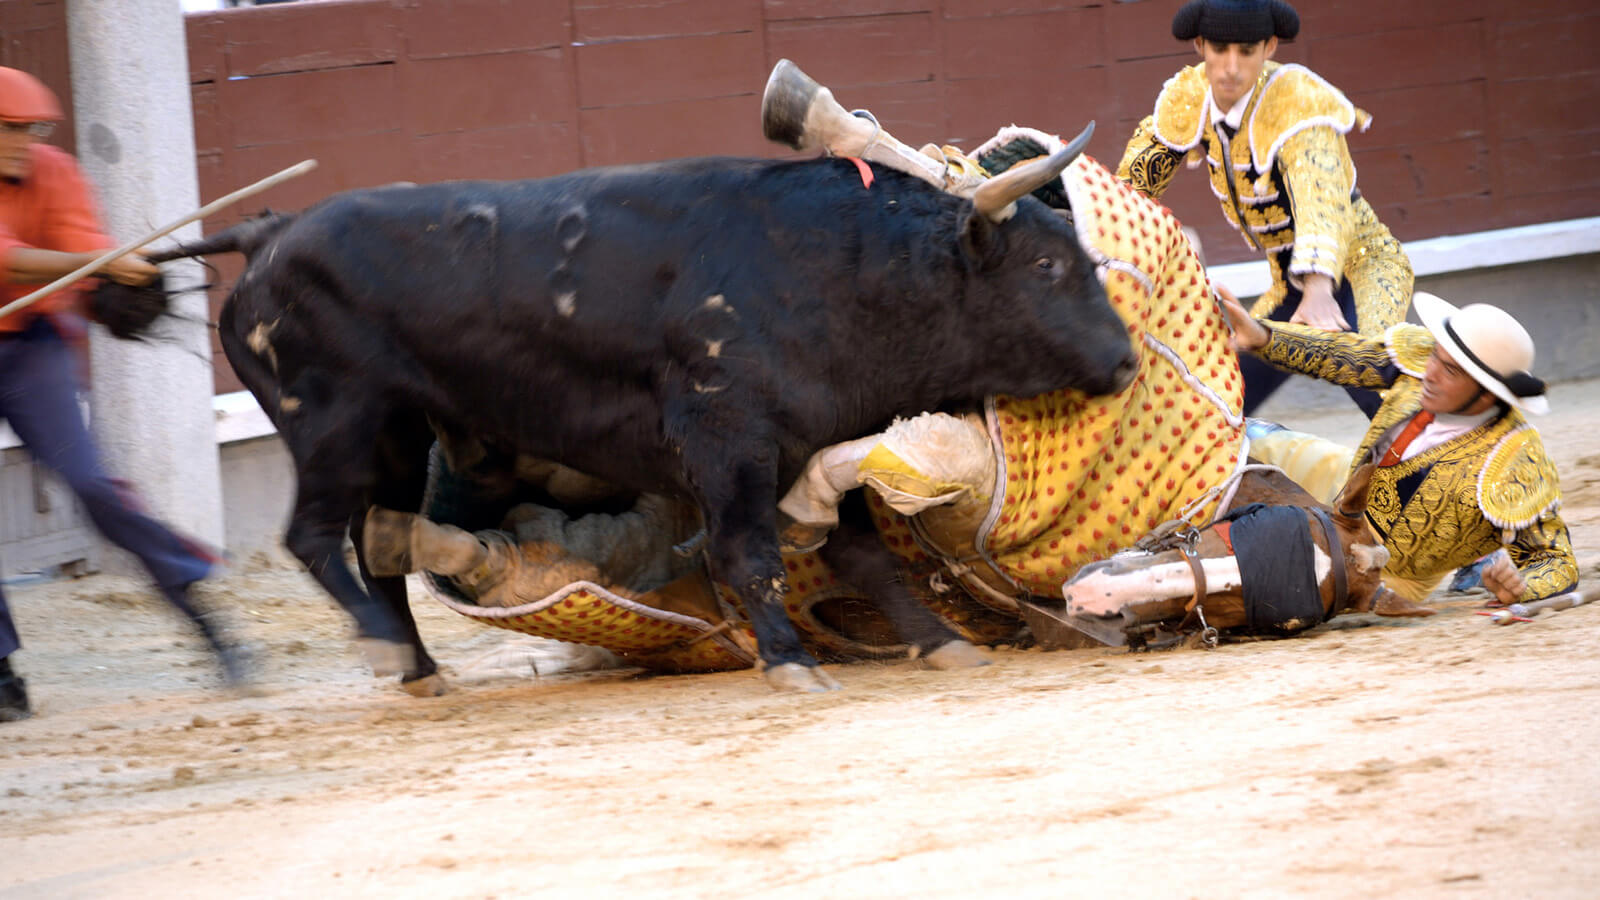 Bullfighting in Spain goes bad after the matador gets attacked by the bull